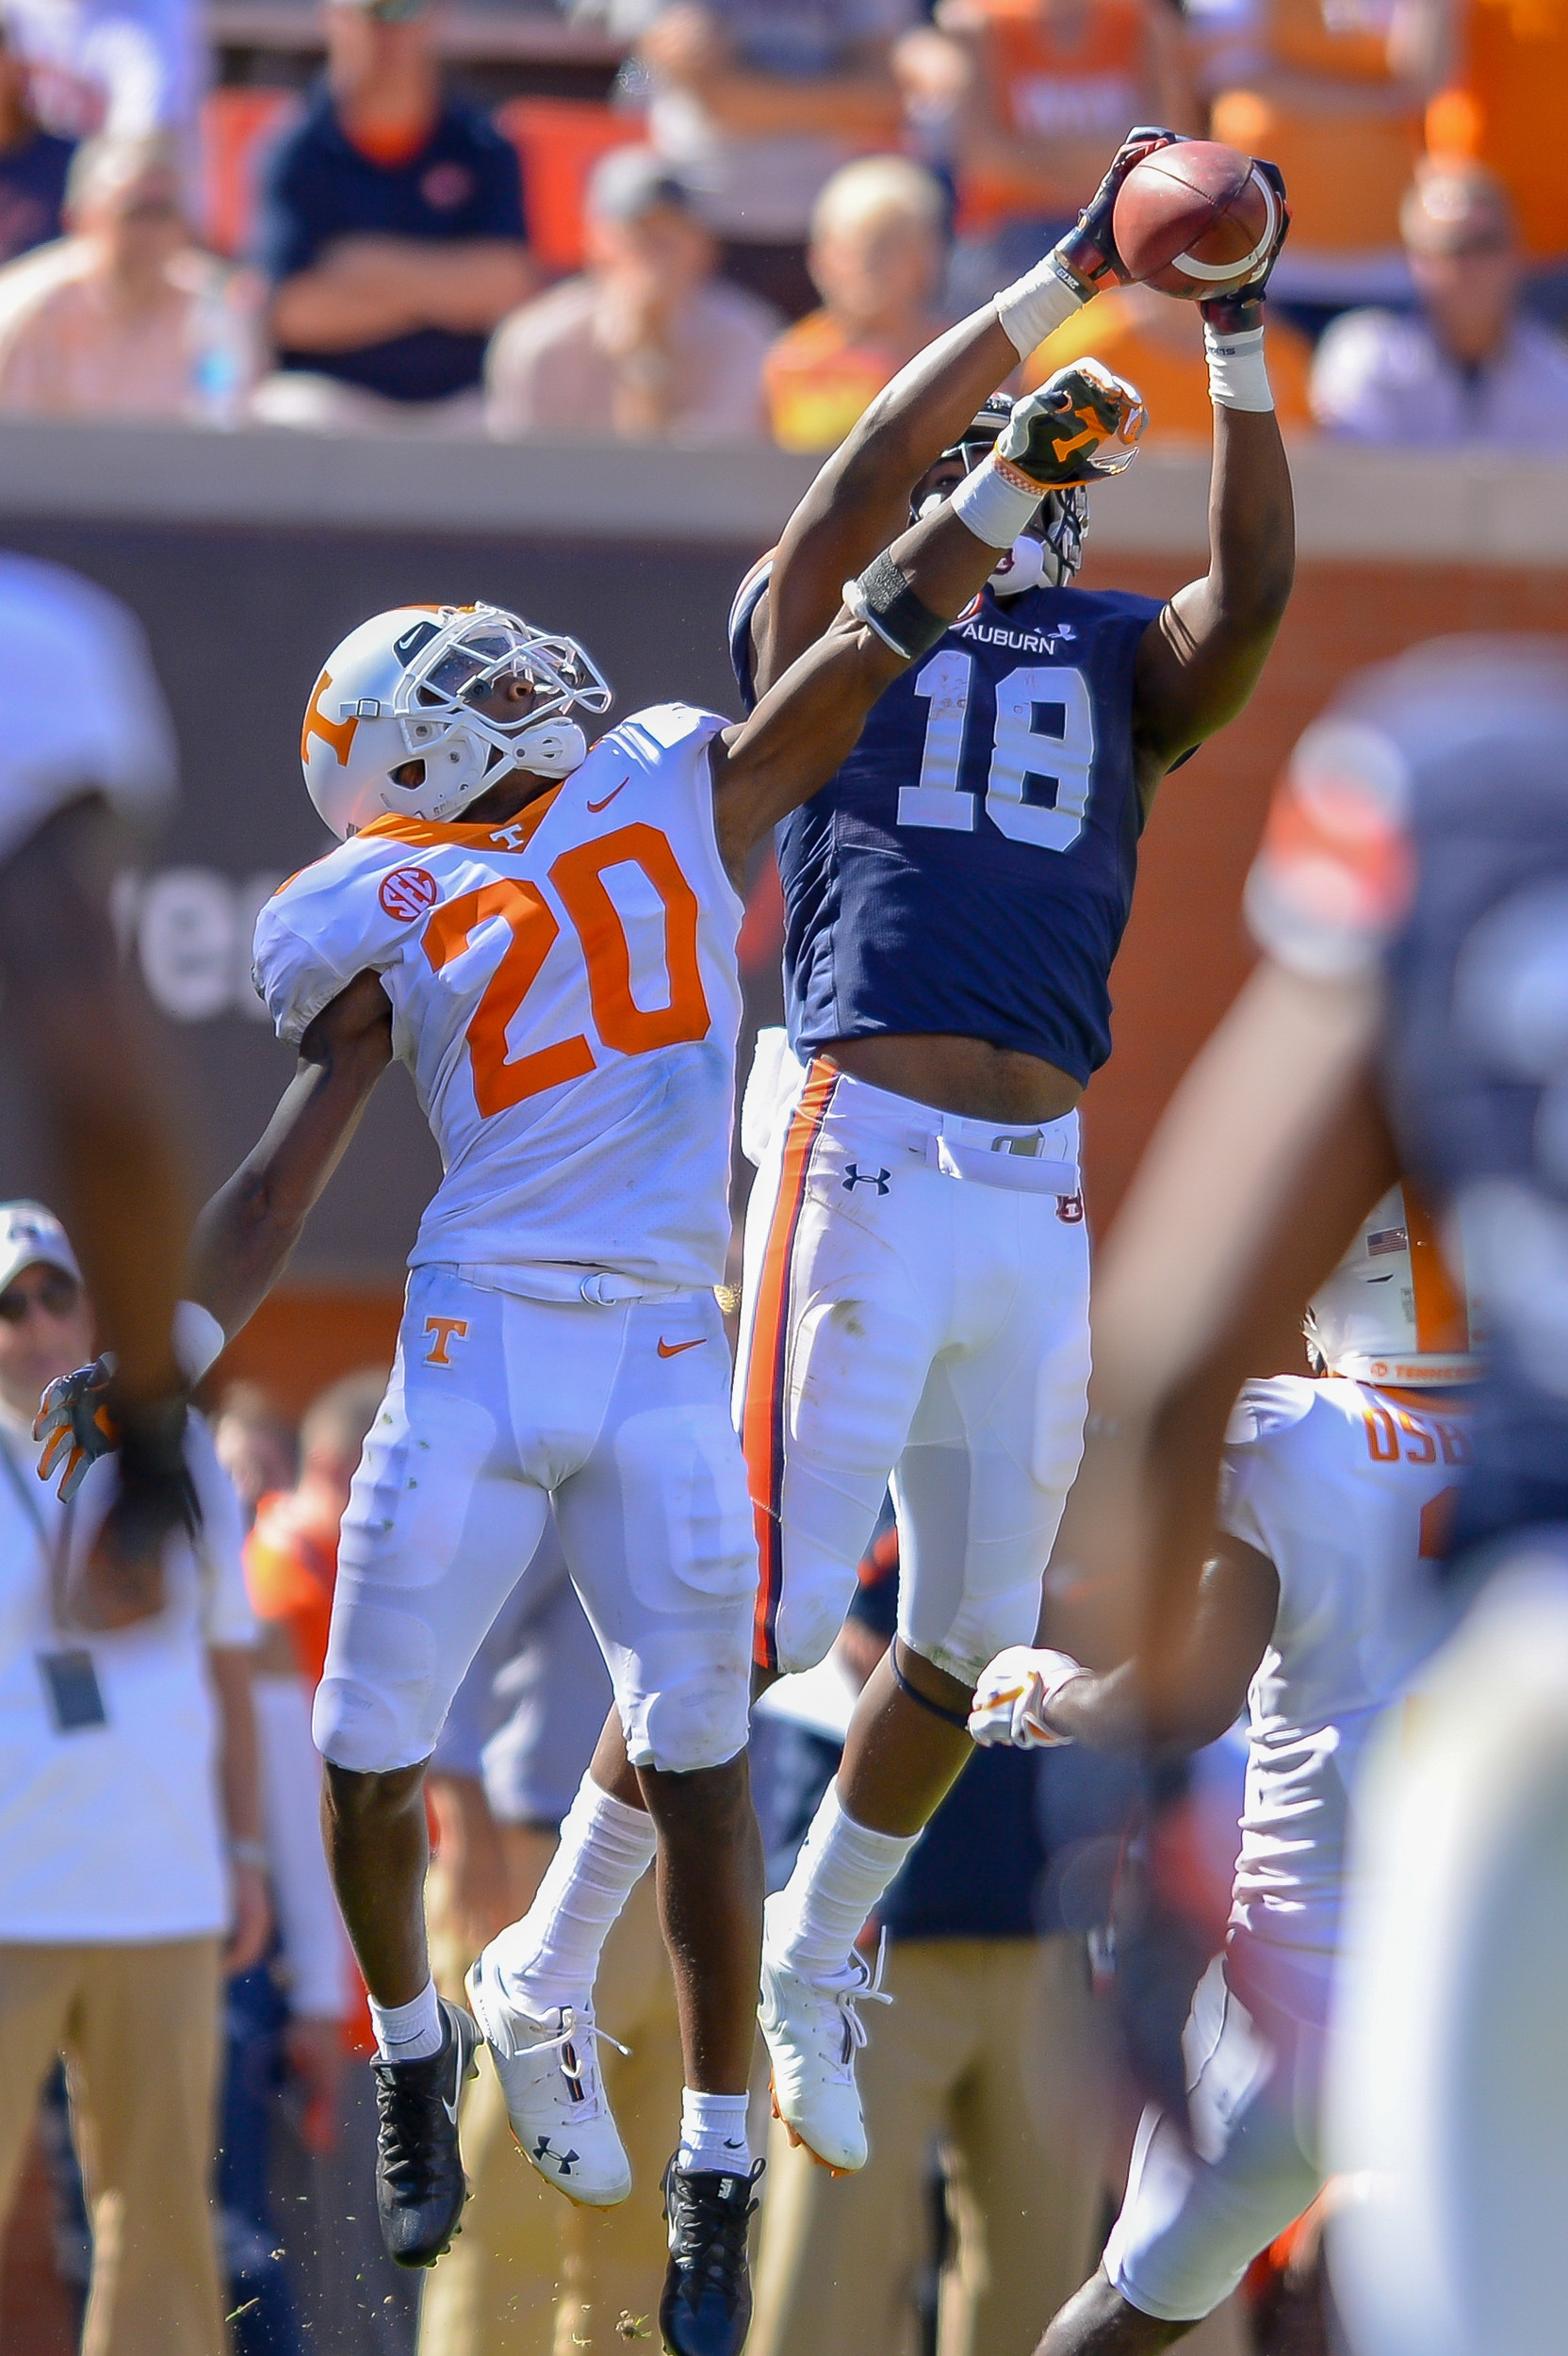 Auburn Tigers wide receiver Seth Williams (18) catches a touchdown pass in front of Tennessee Volunteers defensive back Bryce Thompson (20) during the second half of Saturday's game, at Jordan-Hare Stadium in Auburn, AL. Daily Mountain Eagle -  Jeff Johnsey